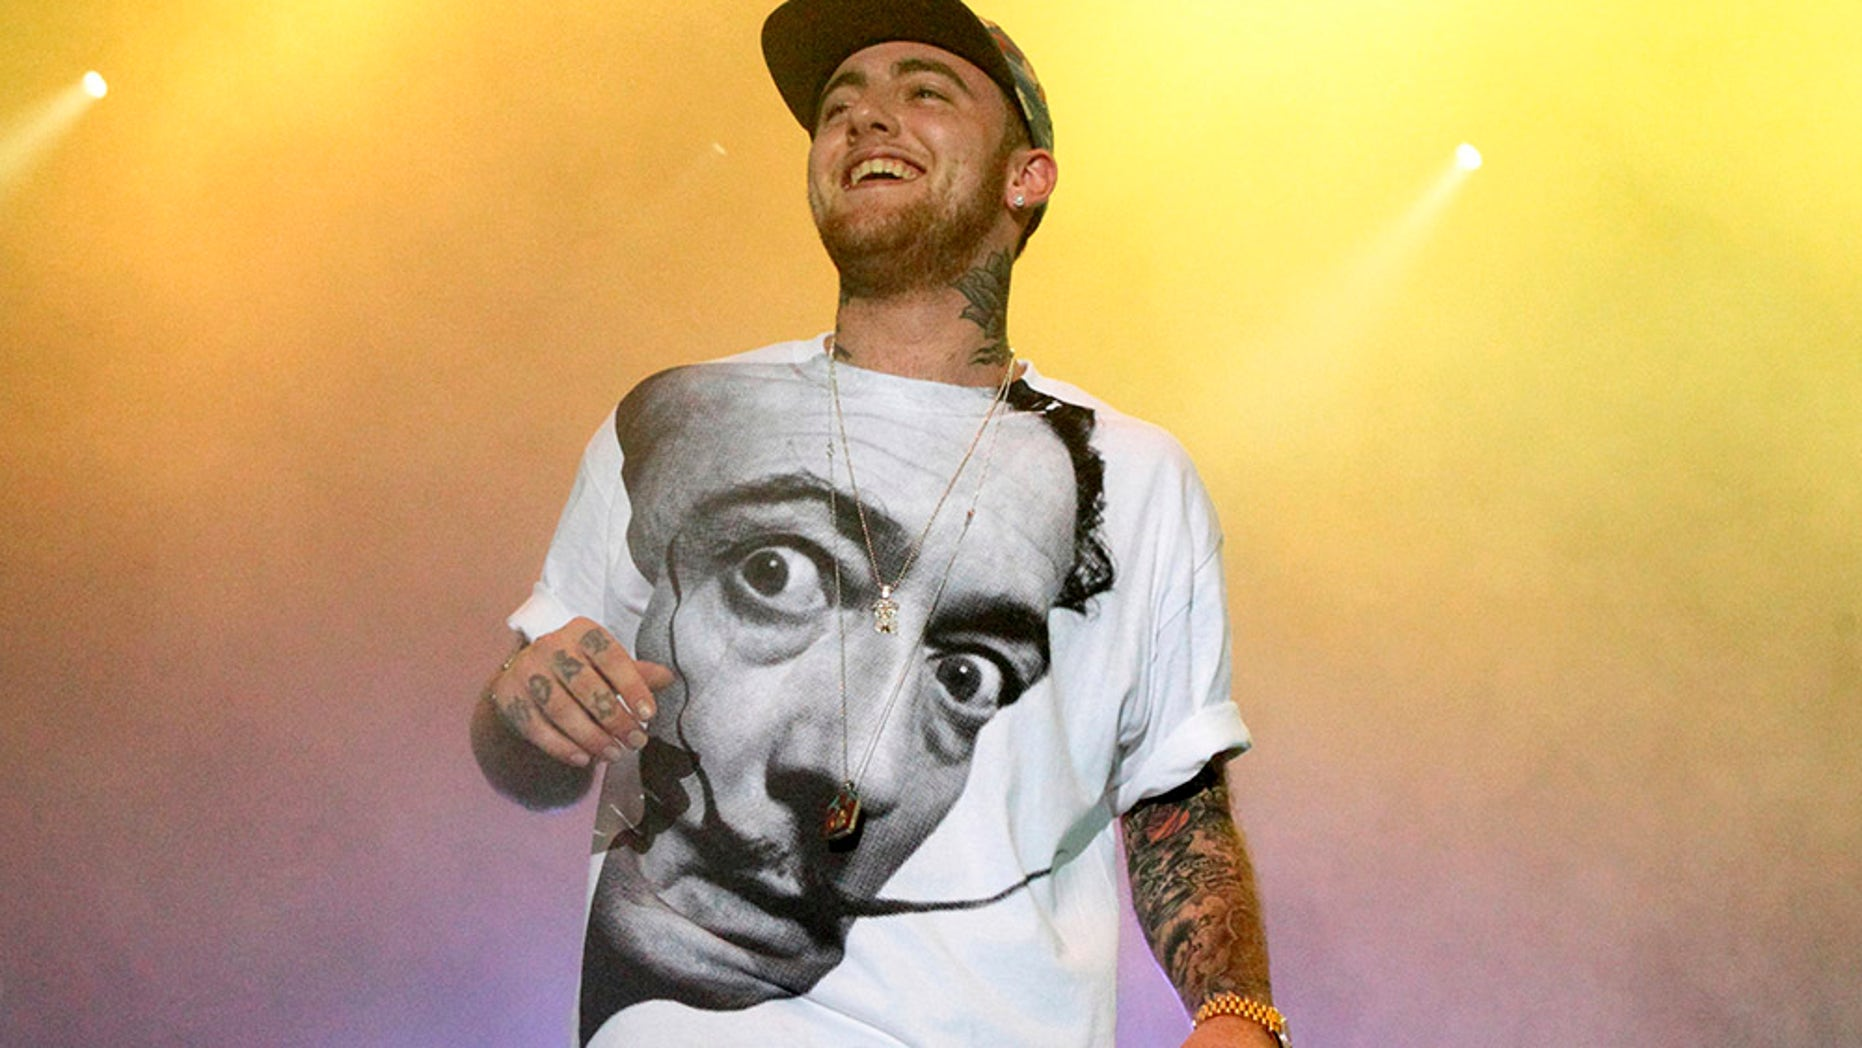 Travis Scott and Others to Honor Mac Miller With Charity Show